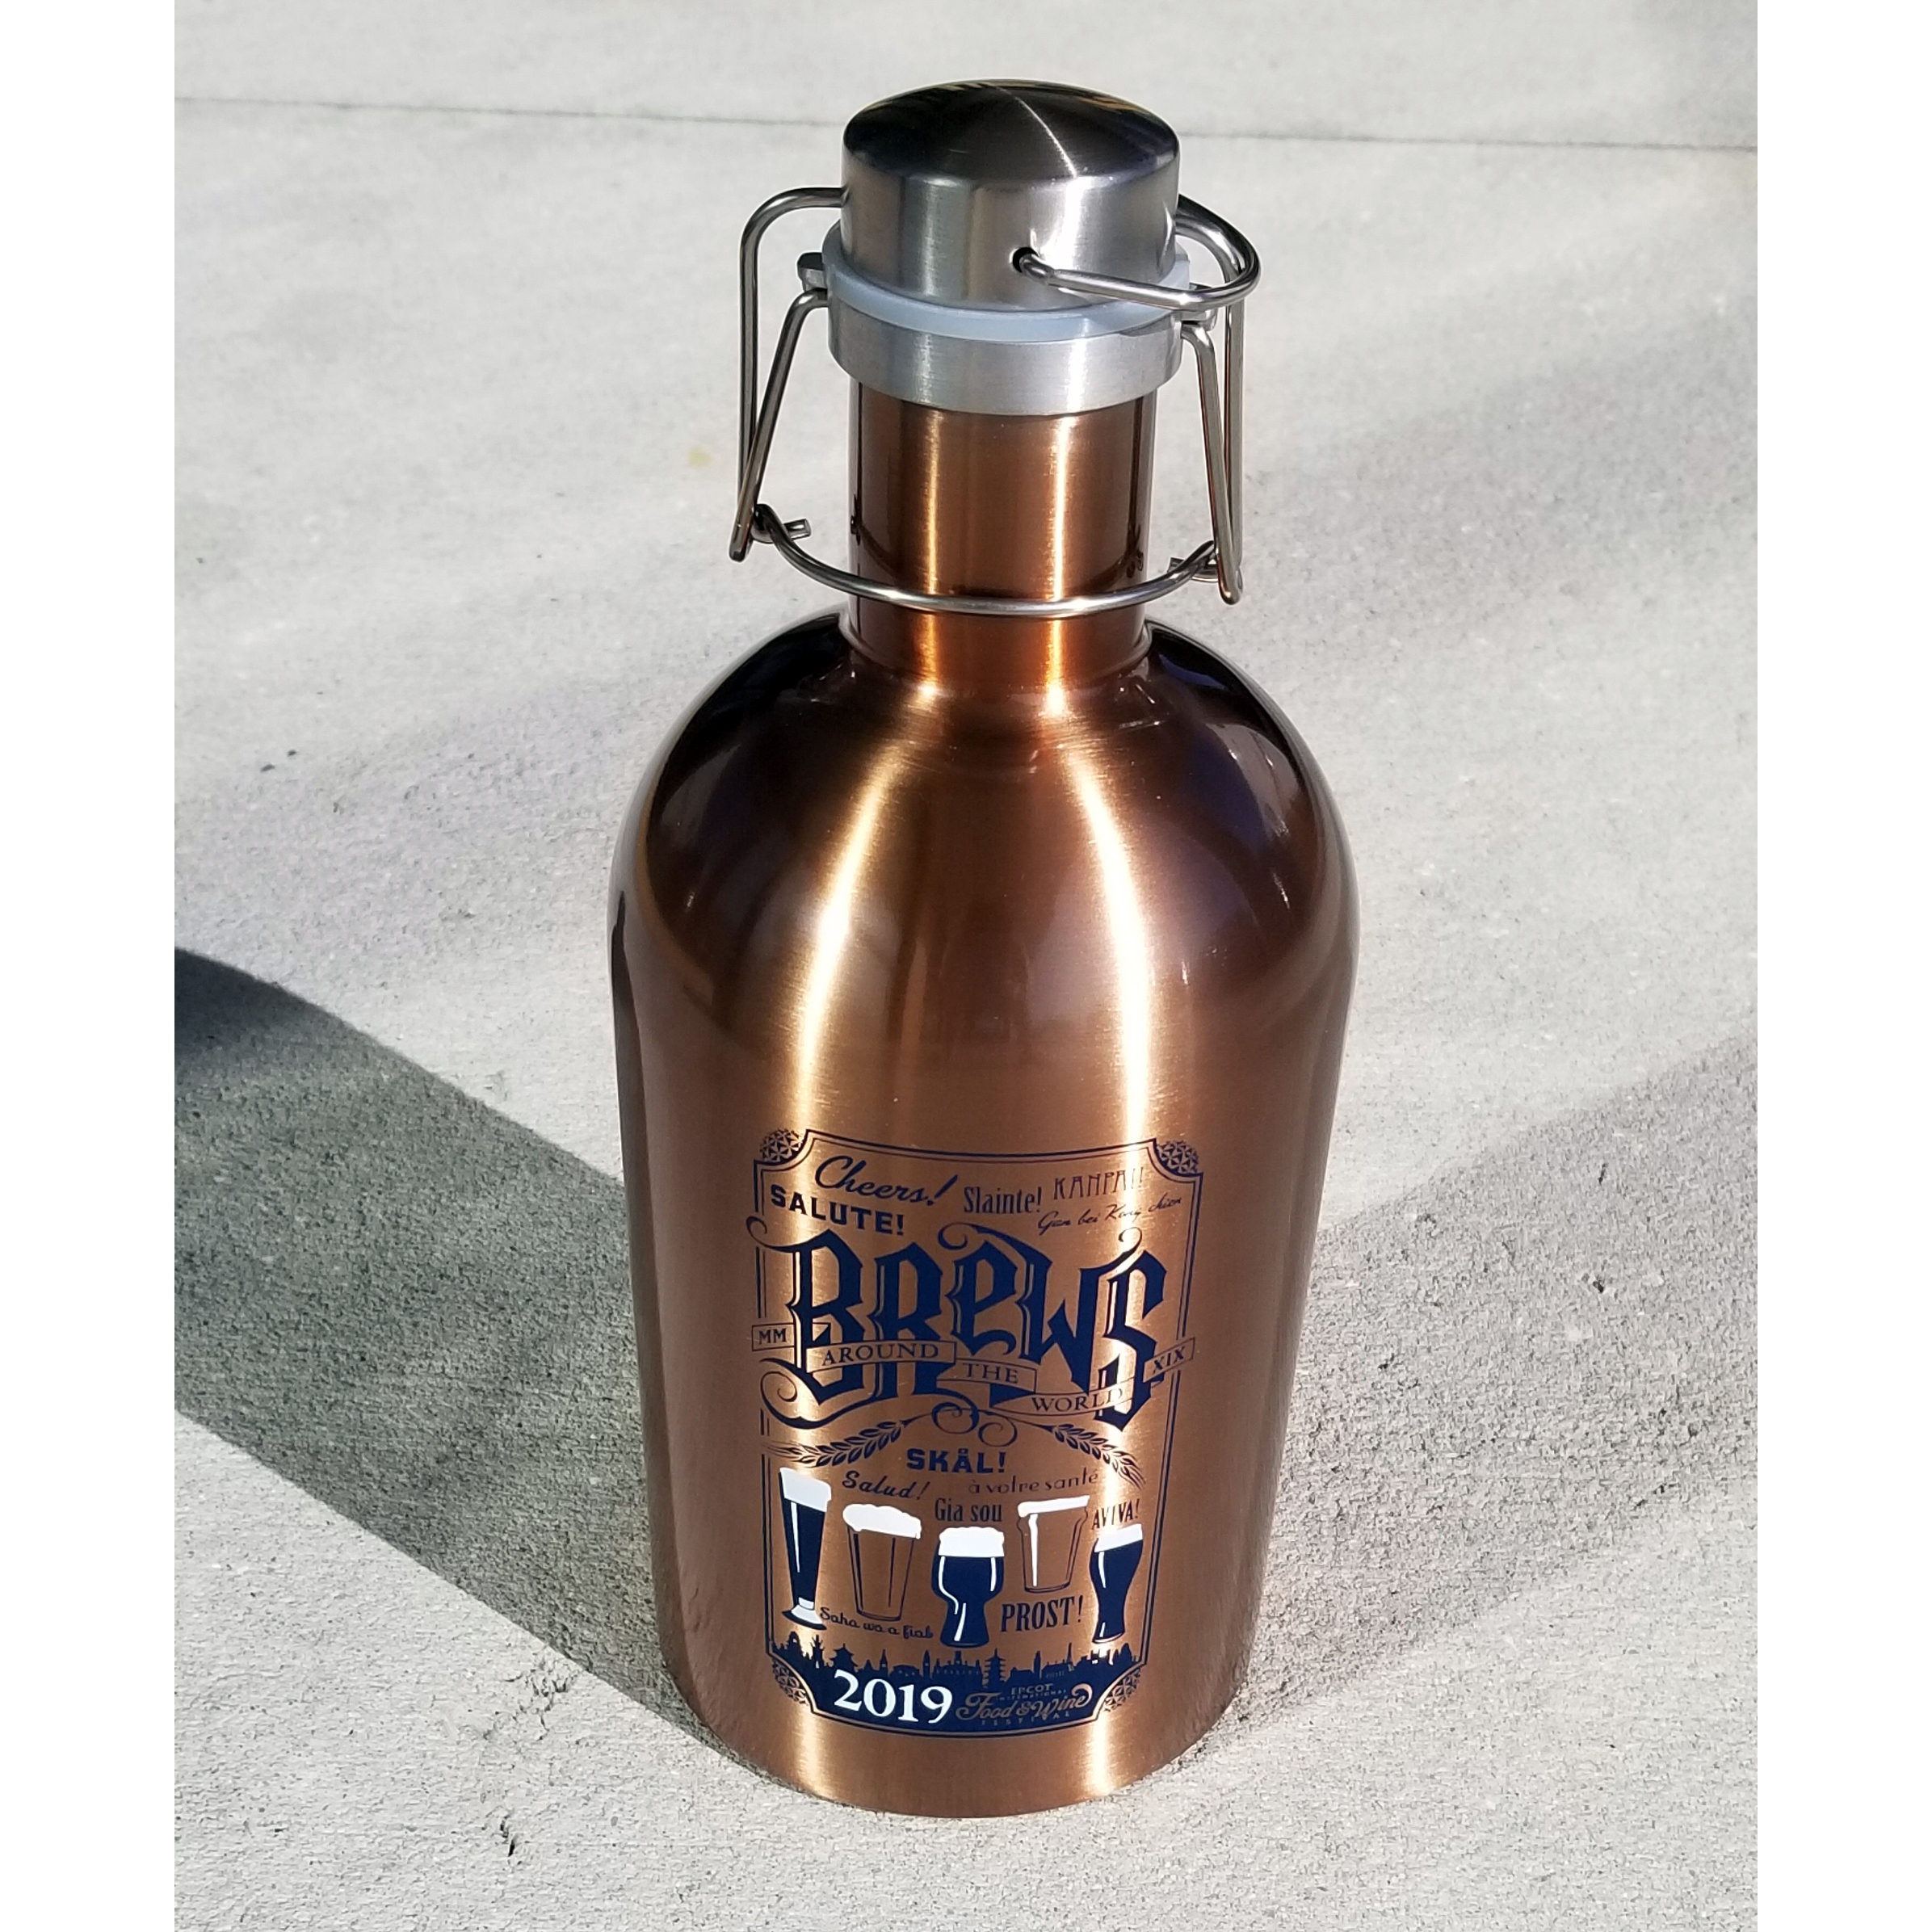 Disney Growler - Food and Wine 2019 64oz Copper Growler